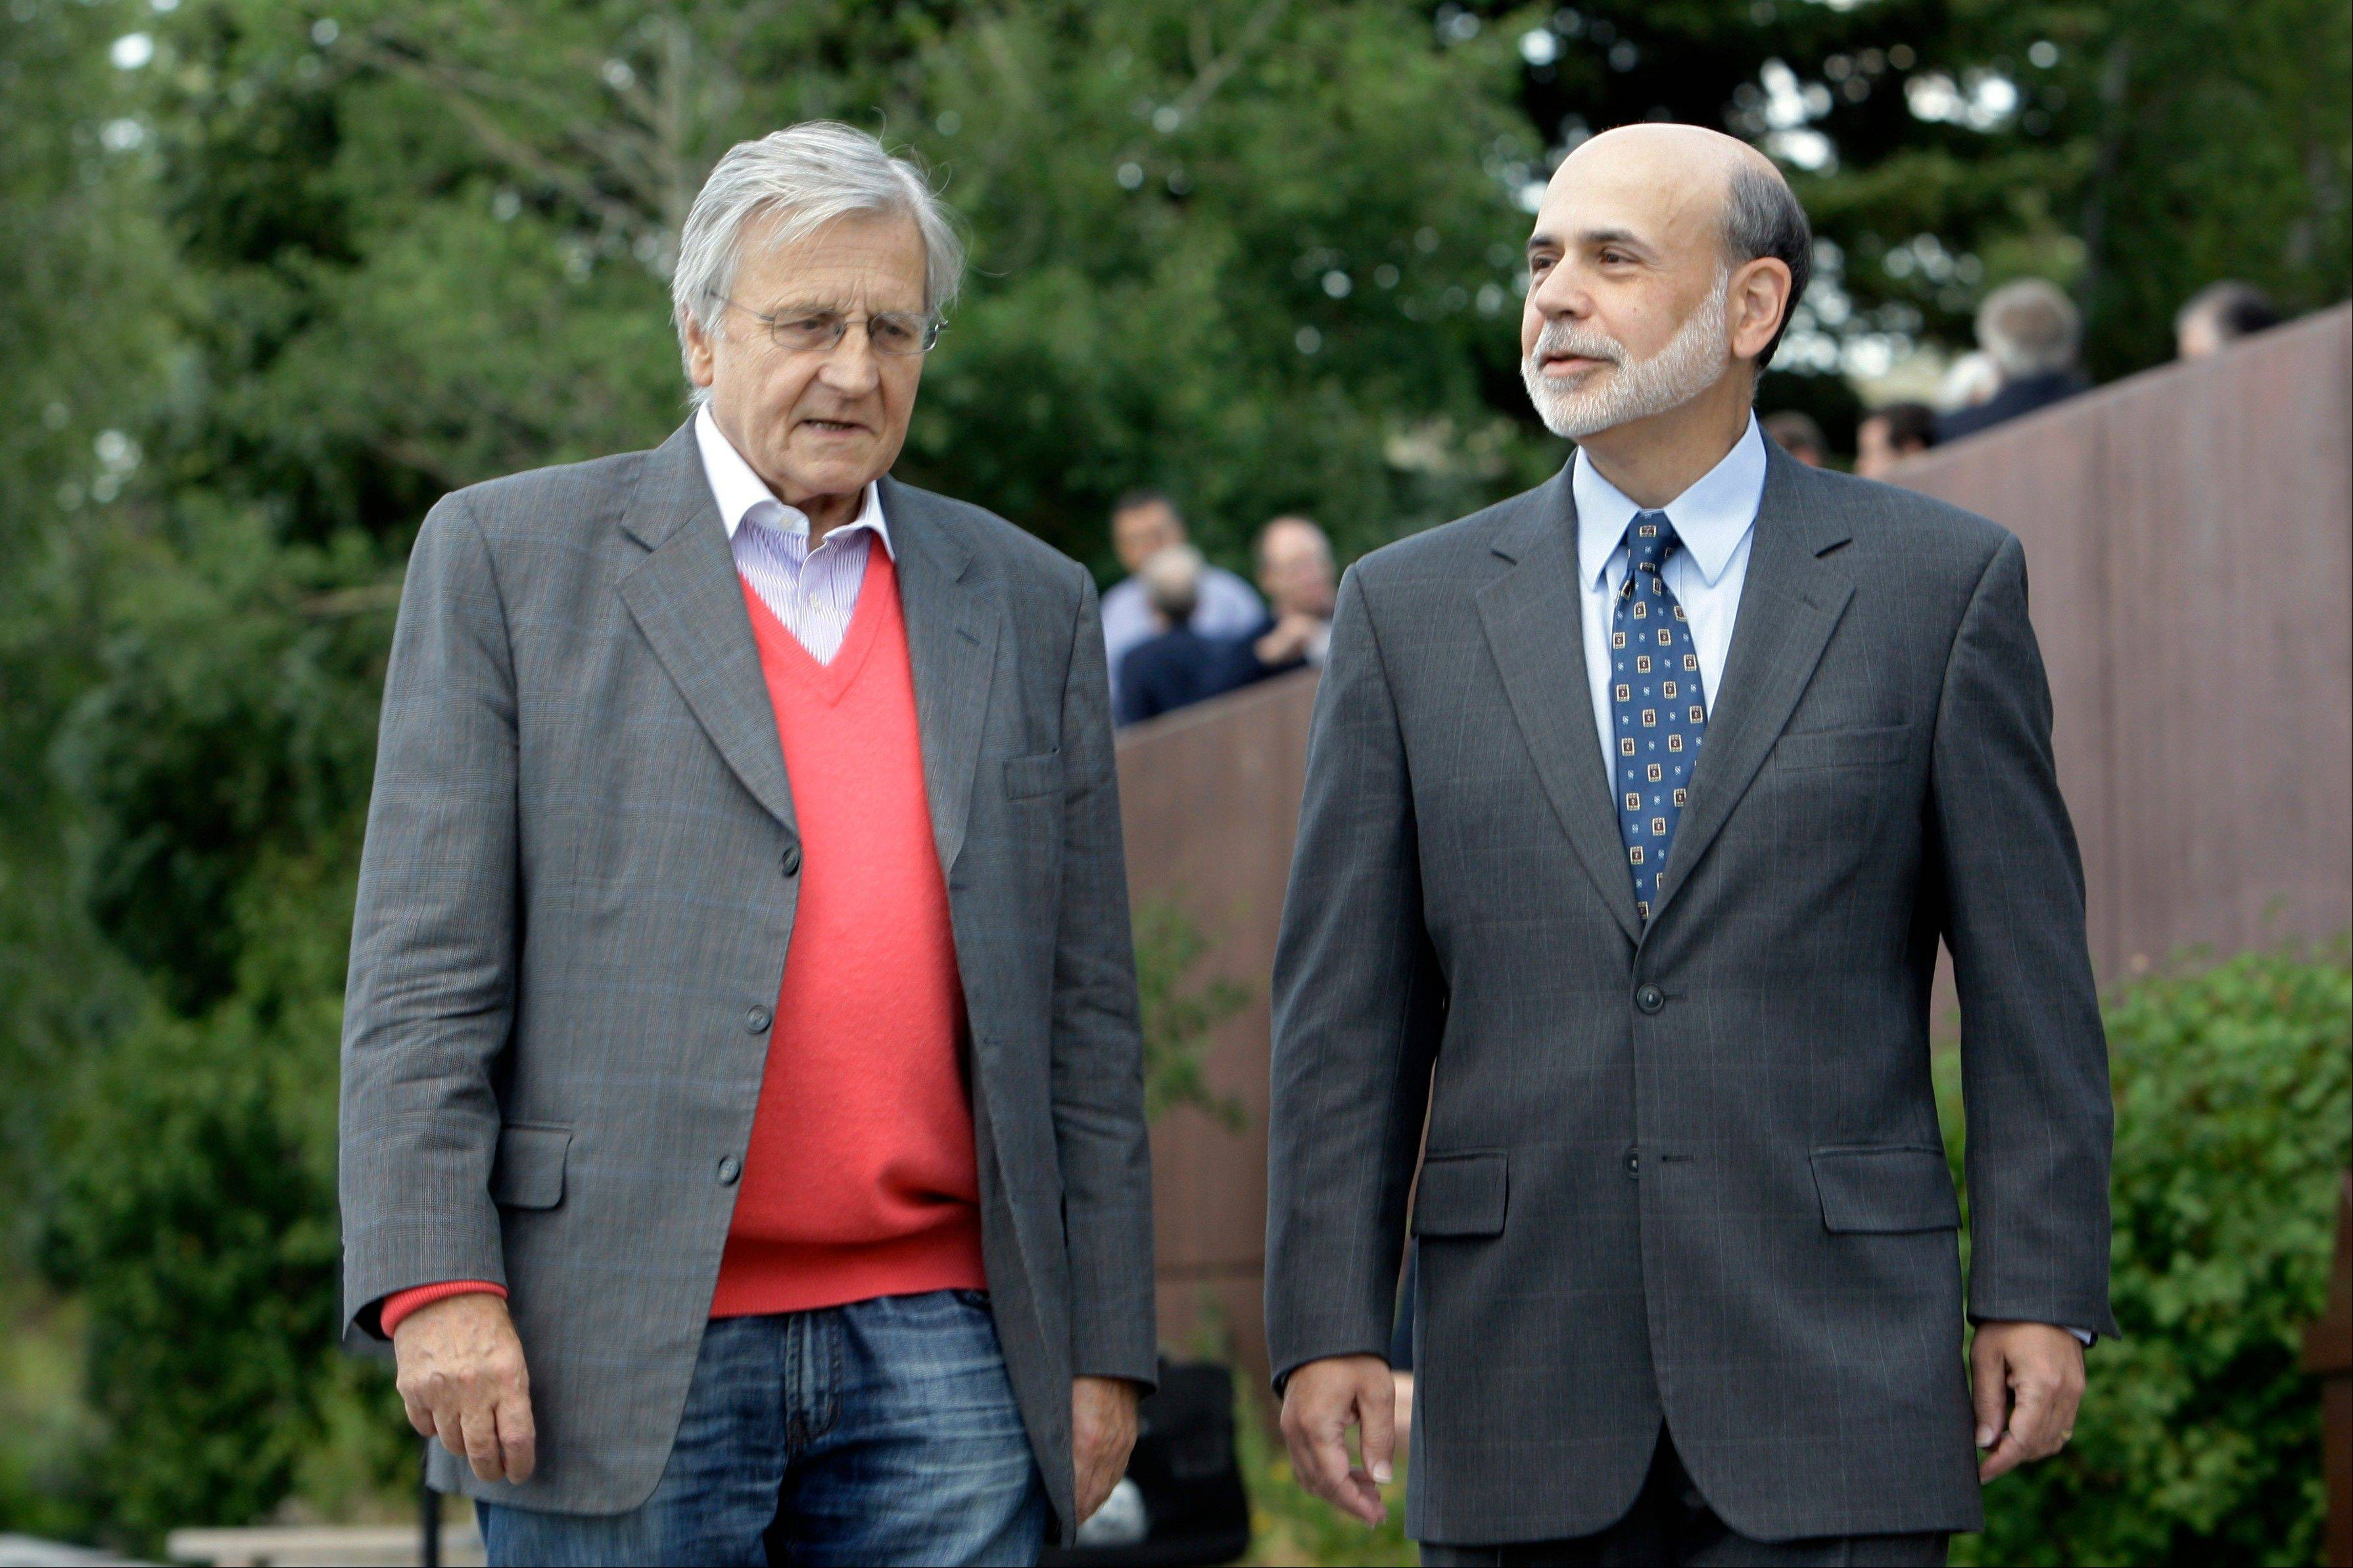 Federal Reserve chairman Paul Bernanke, right, and Jean-Claude Trichet, of France, president of the European Central Bank, take a morning stroll on the veranda of the Jackson Lake Lodge, before the morning session of the Economic Policy Symposium at Jackson Hole in Moran, Wyo., Friday.